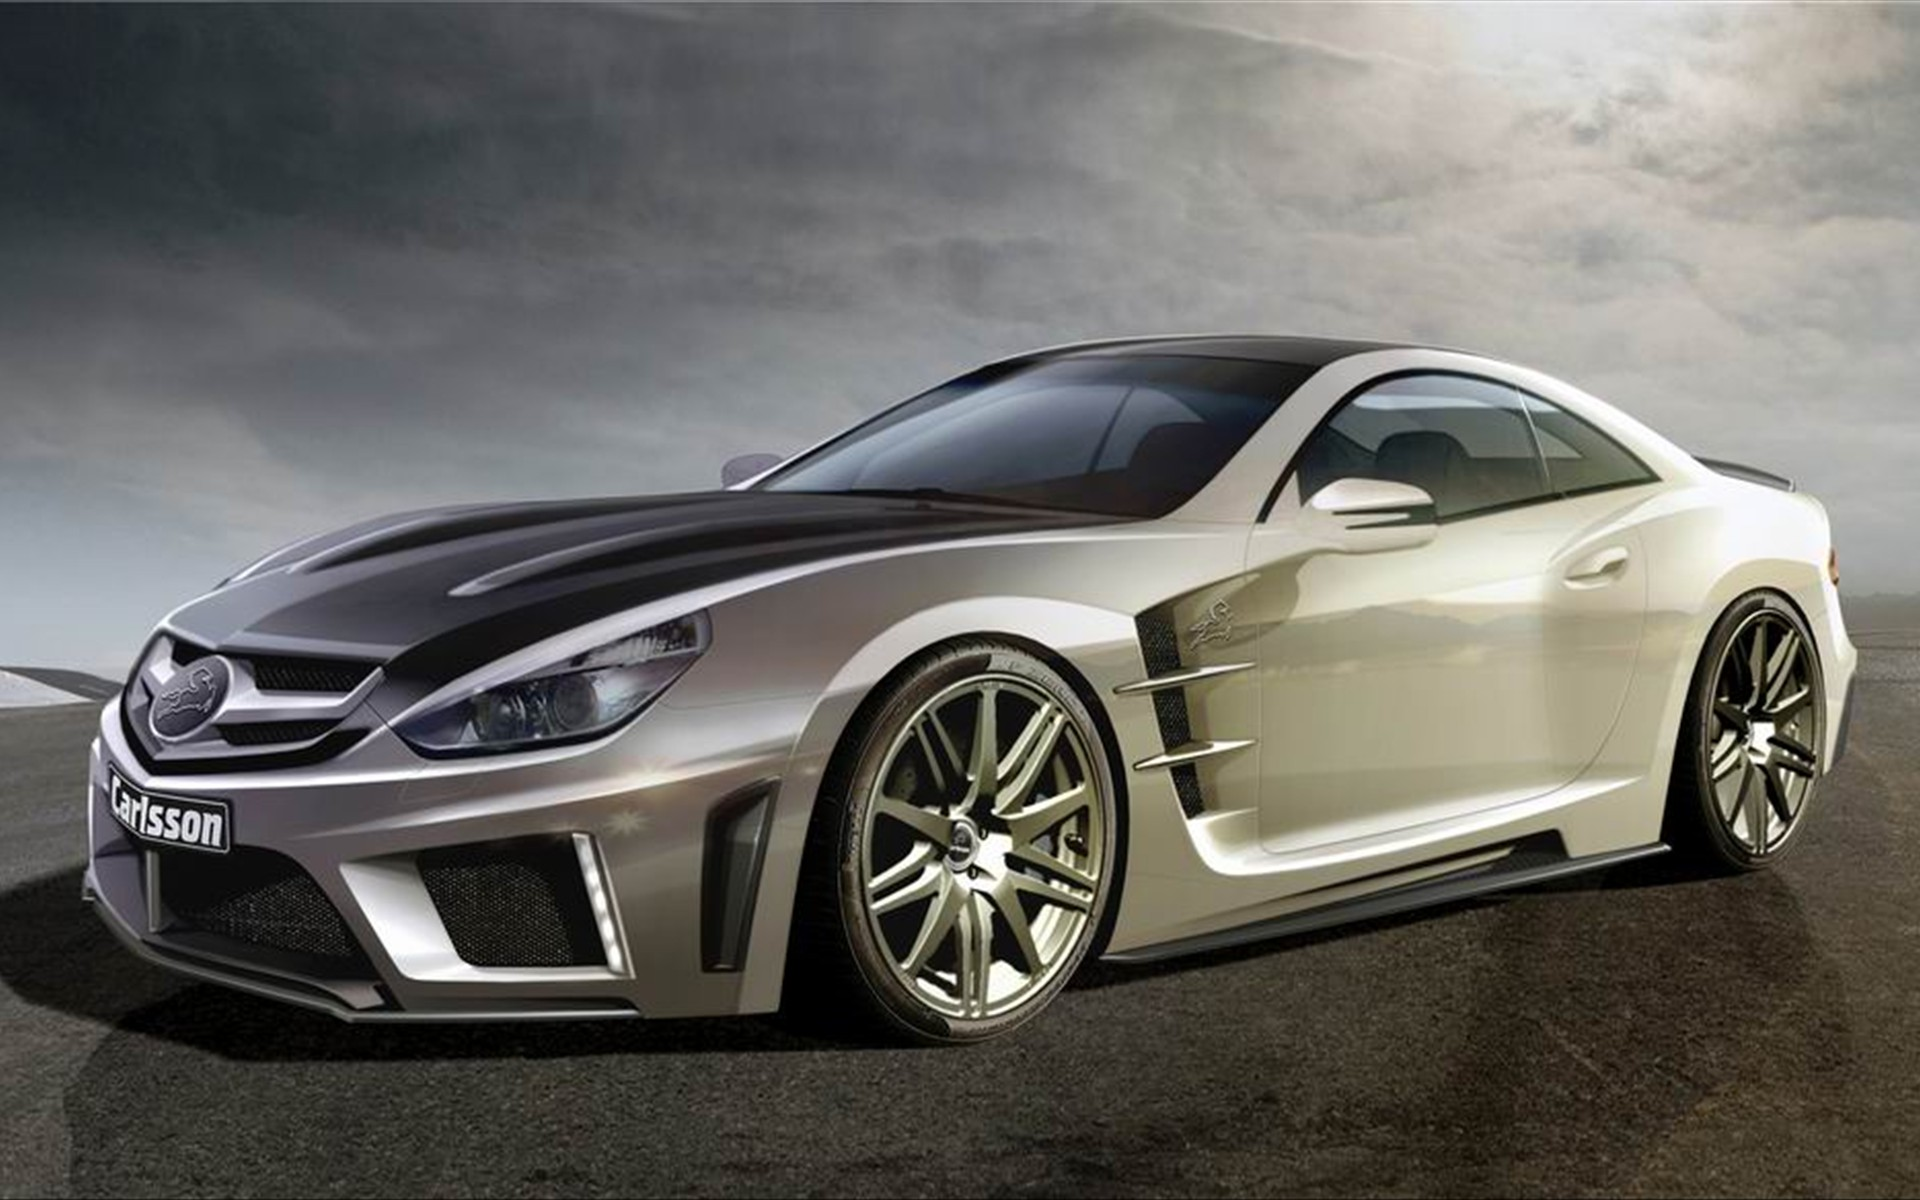 Super Cars Carlsson C Car Hd Desktop 310115 Wallpaper Wallpaper